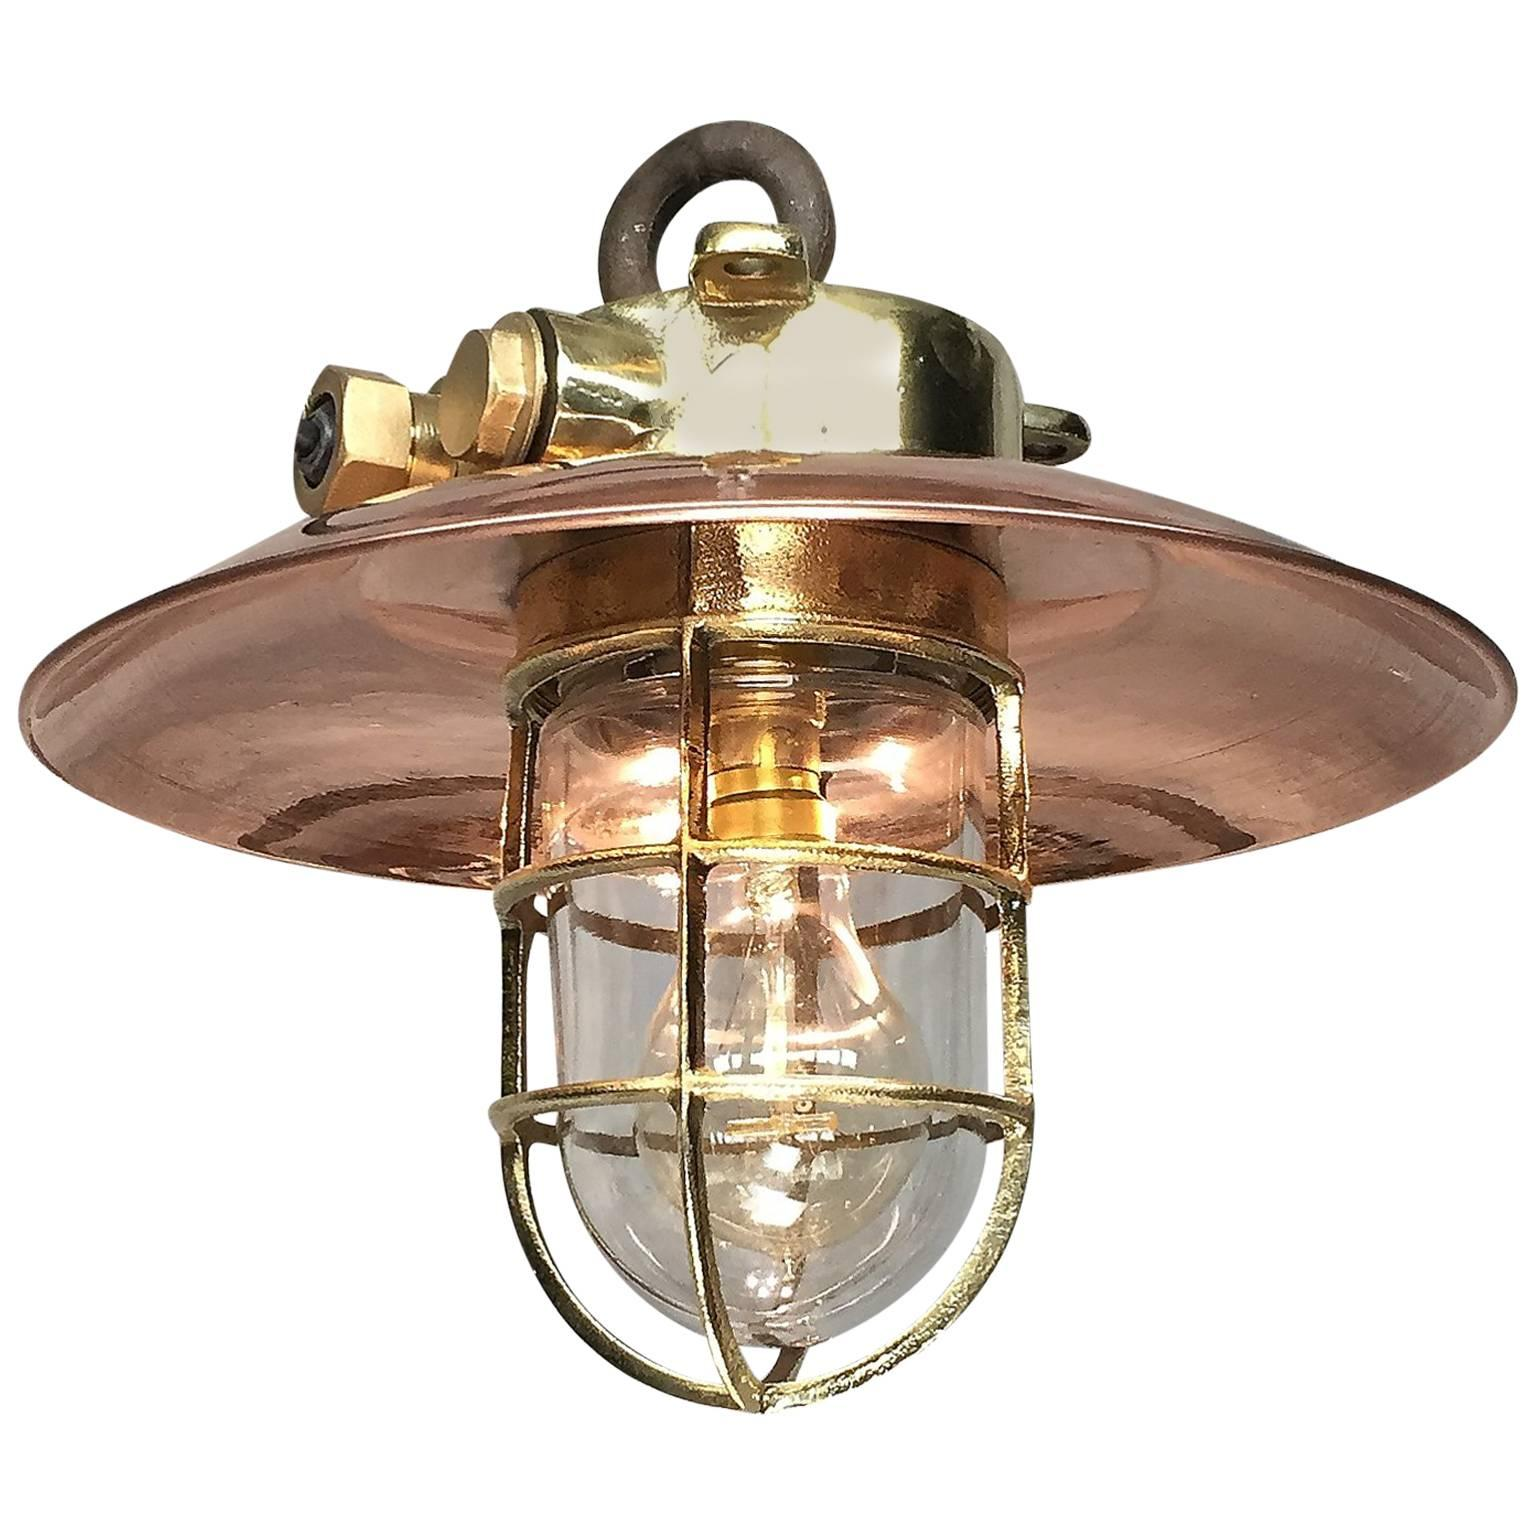 20th Century Brass and Copper Explosion Proof Pendant, Glass Dome, Edison Bulb